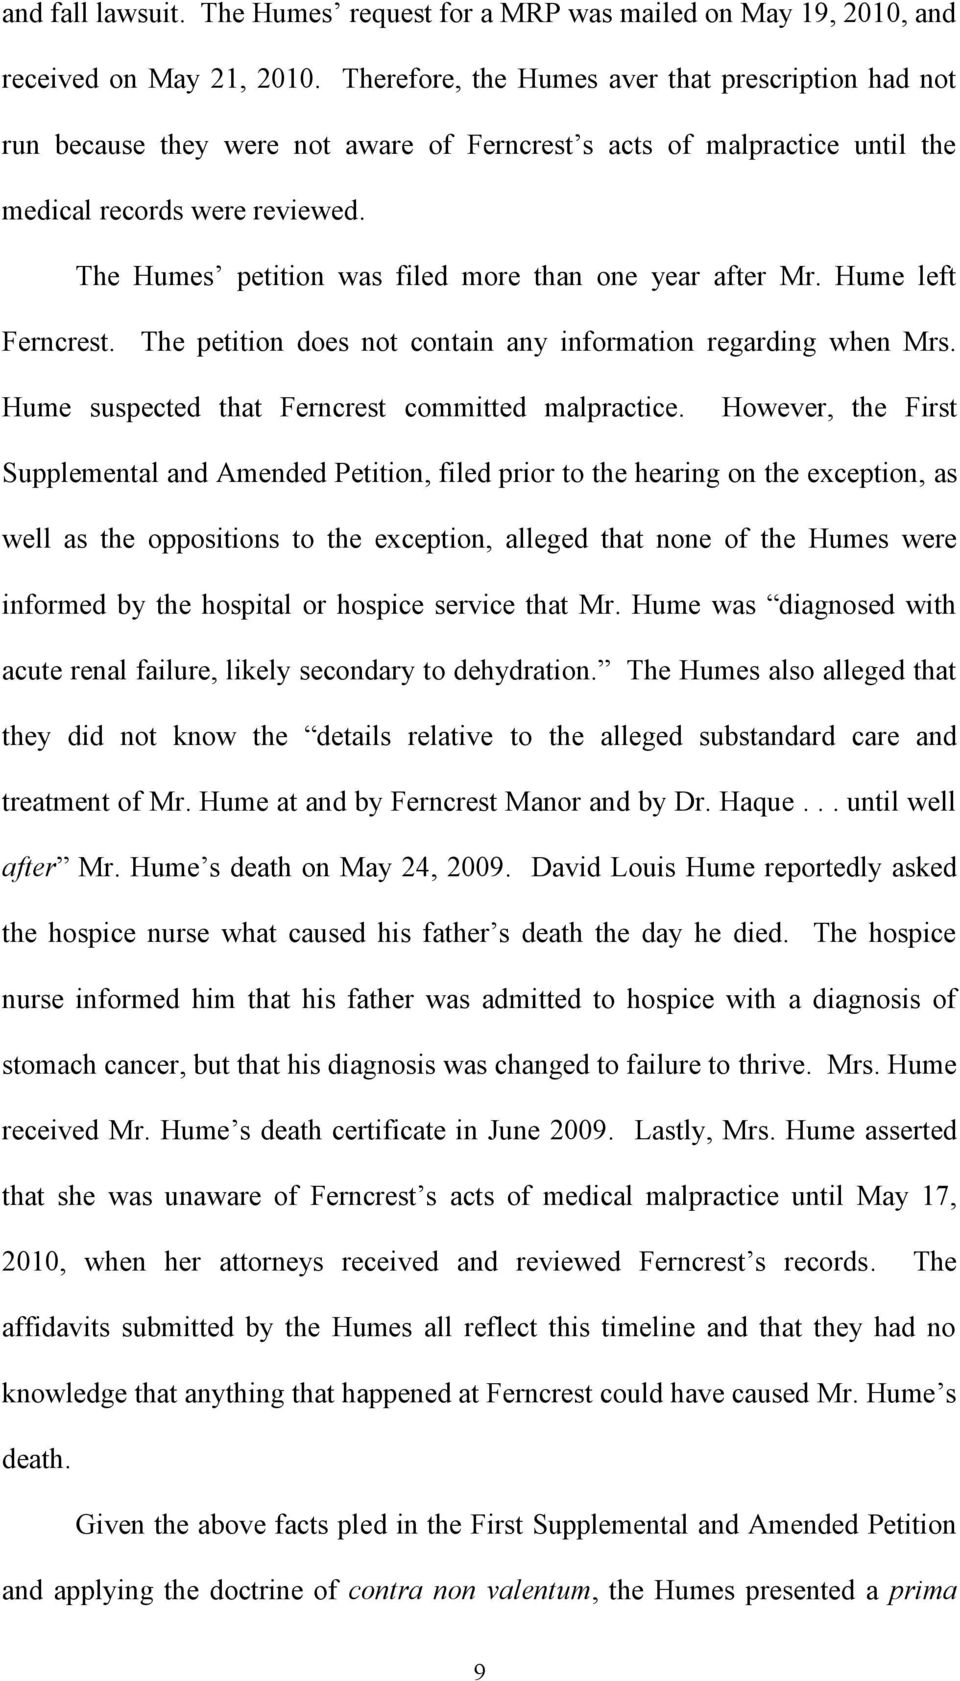 The Humes petition was filed more than one year after Mr. Hume left Ferncrest. The petition does not contain any information regarding when Mrs. Hume suspected that Ferncrest committed malpractice.